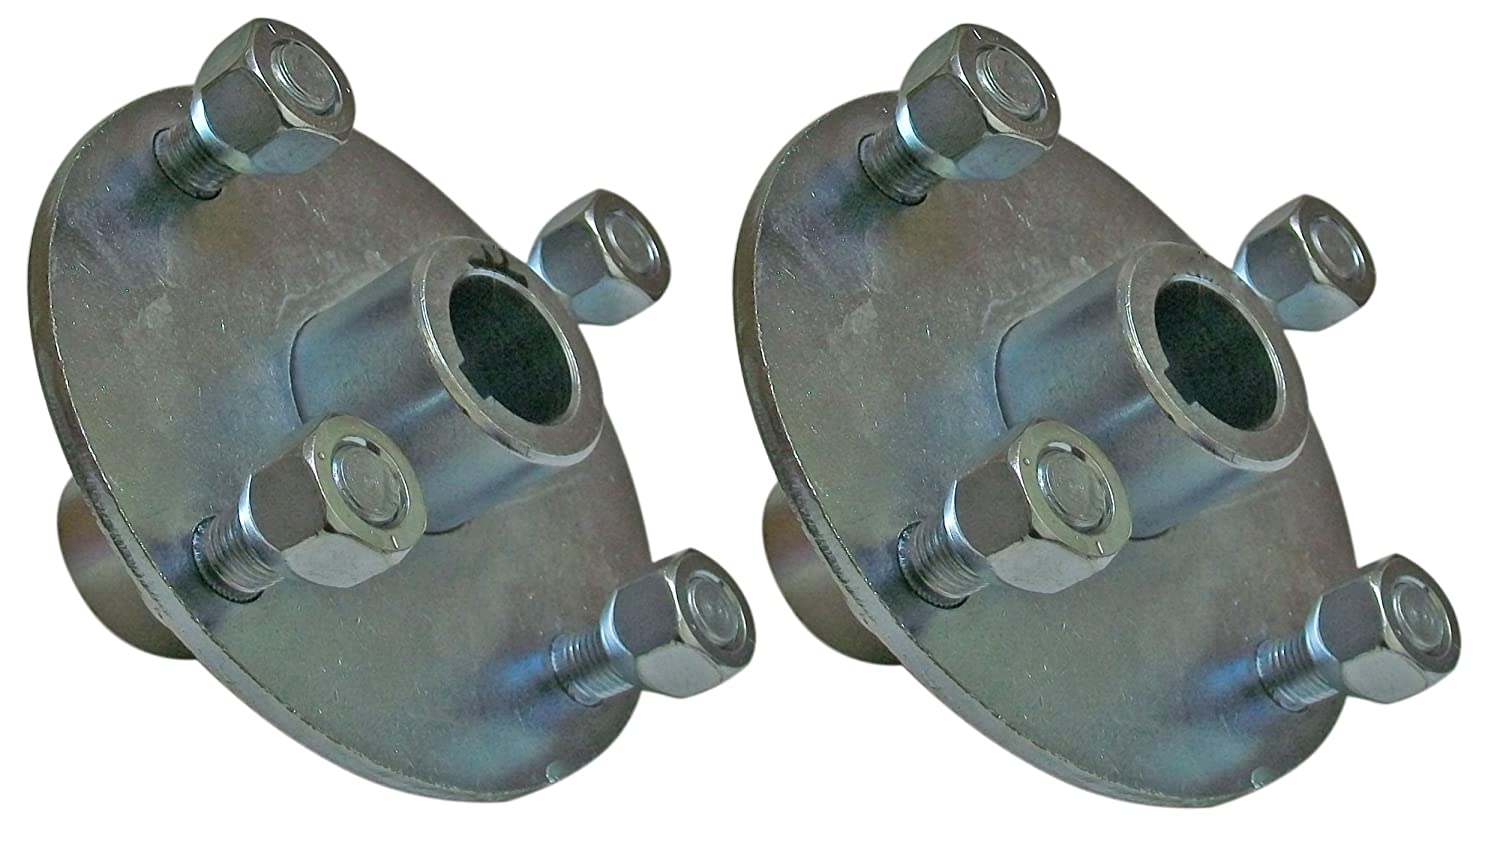 Set of 2-4x4 Galvanized Wheel Hubs 1' Bore with Lug Nuts for Go Karts Trailers Lawn Equipment BMI Karts